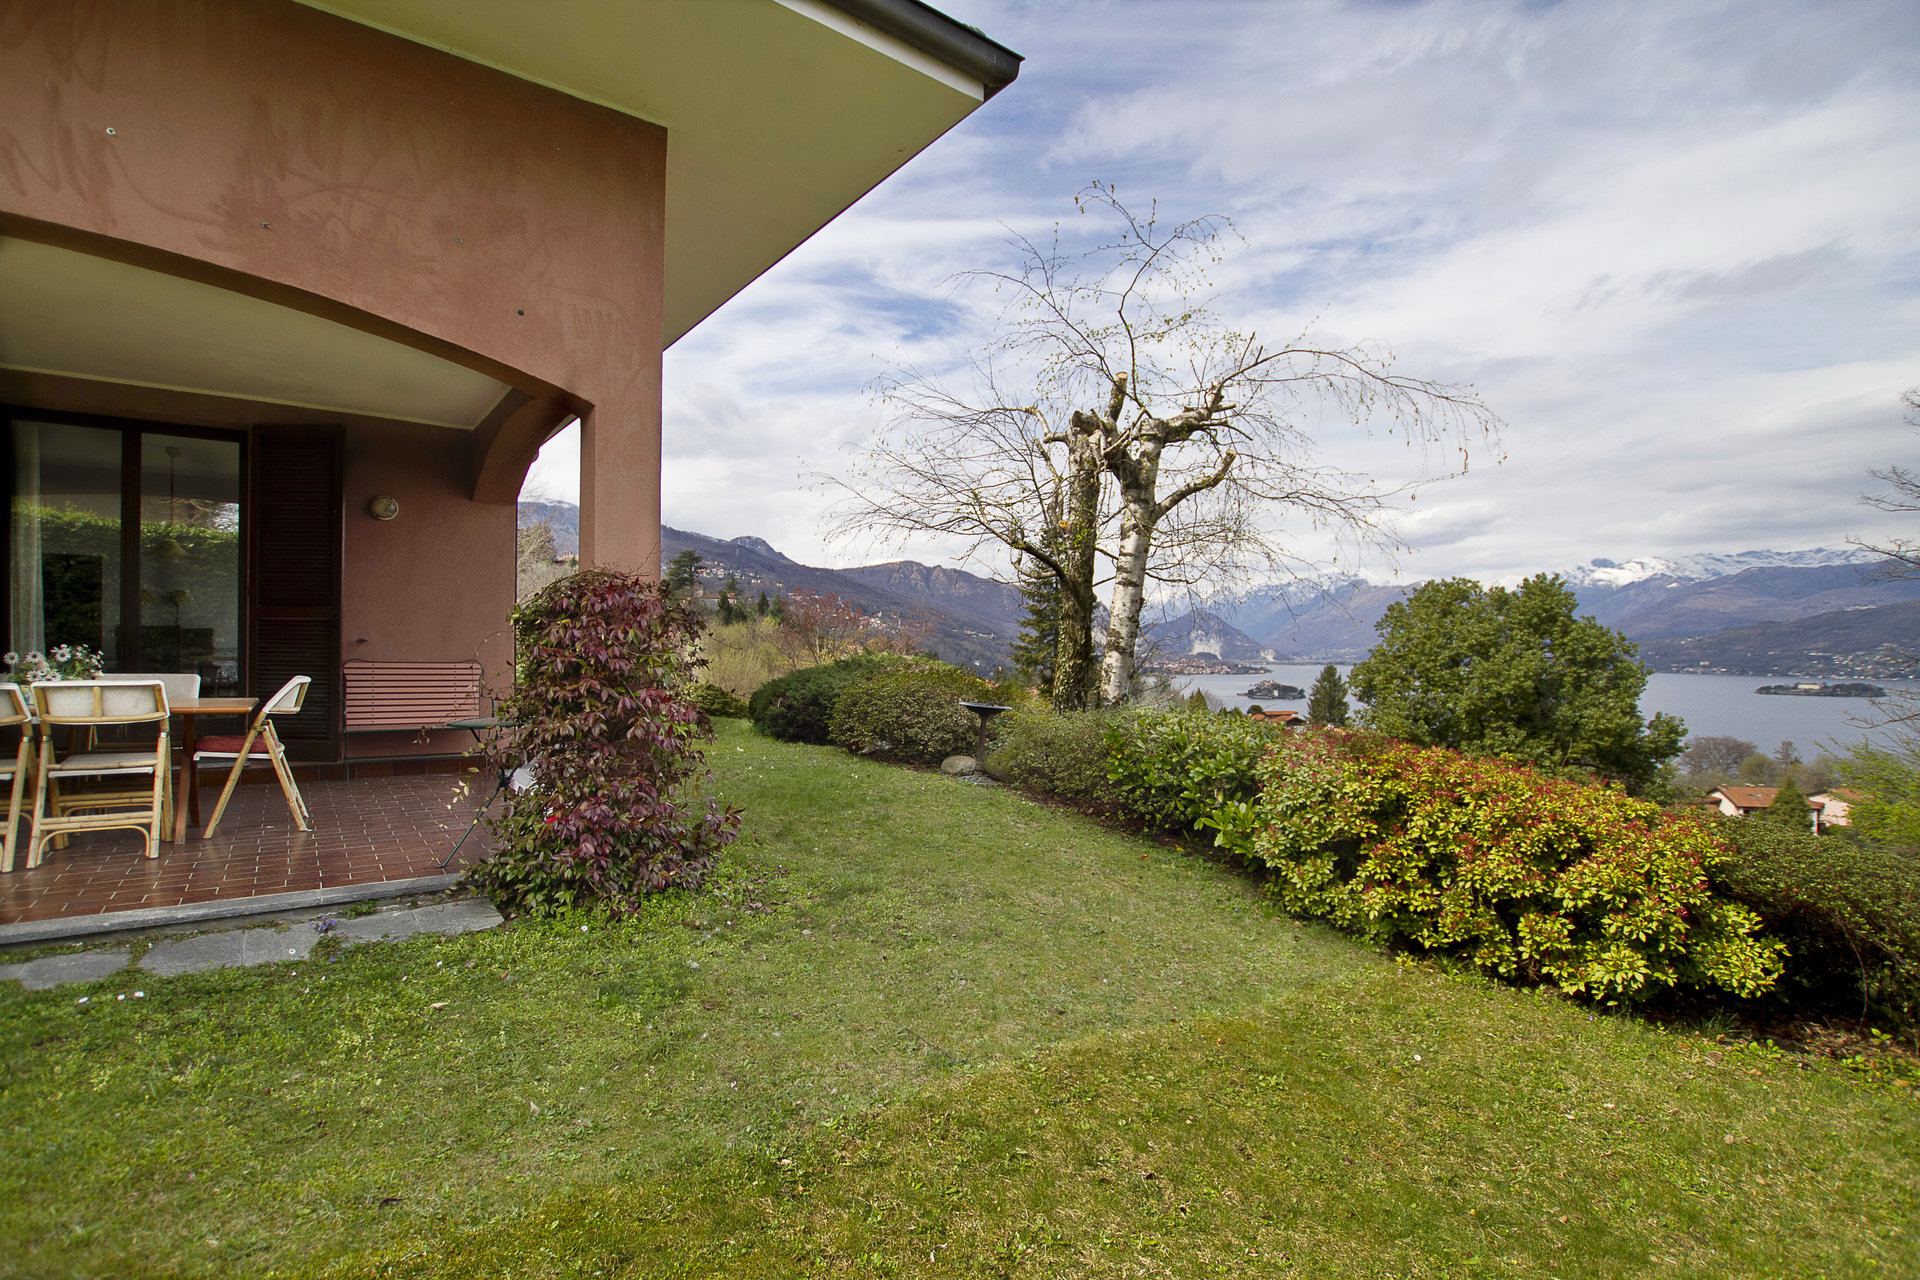 Lake view 80s villa in Stresa -  garden with a view